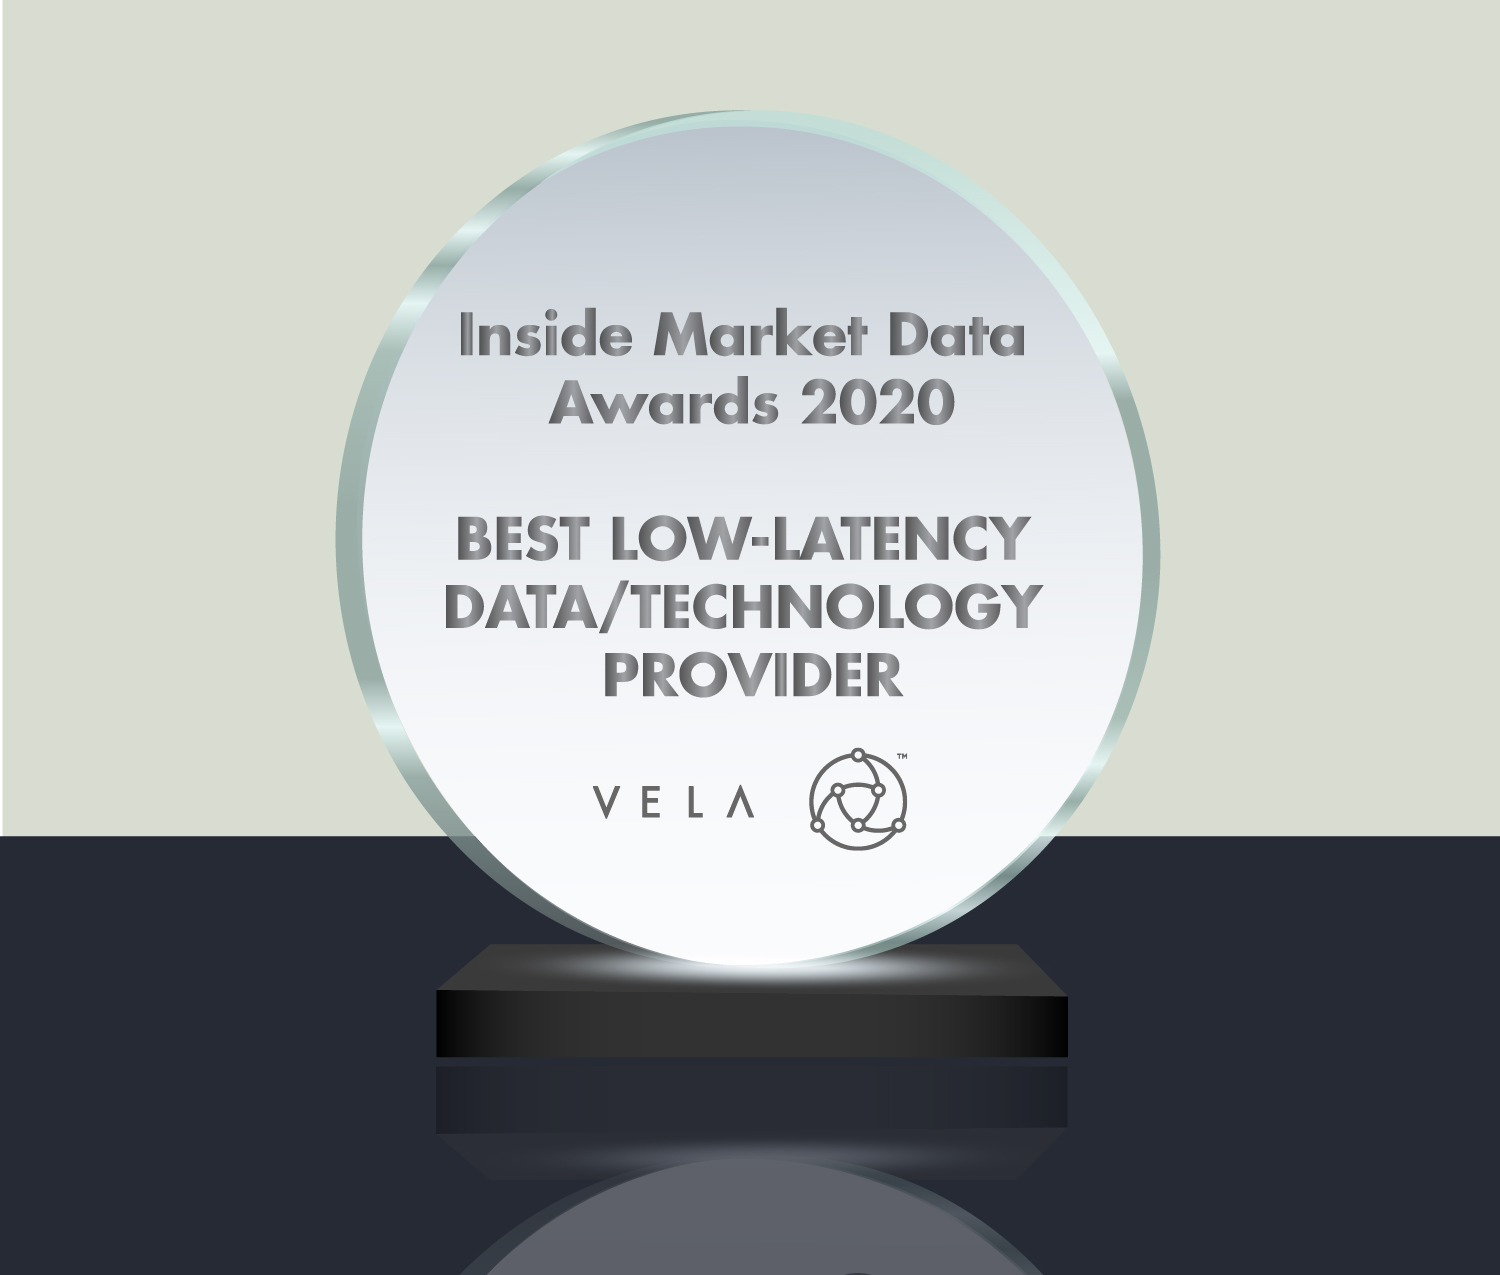 Vela named Best Low-Latency Data/Technology Provider